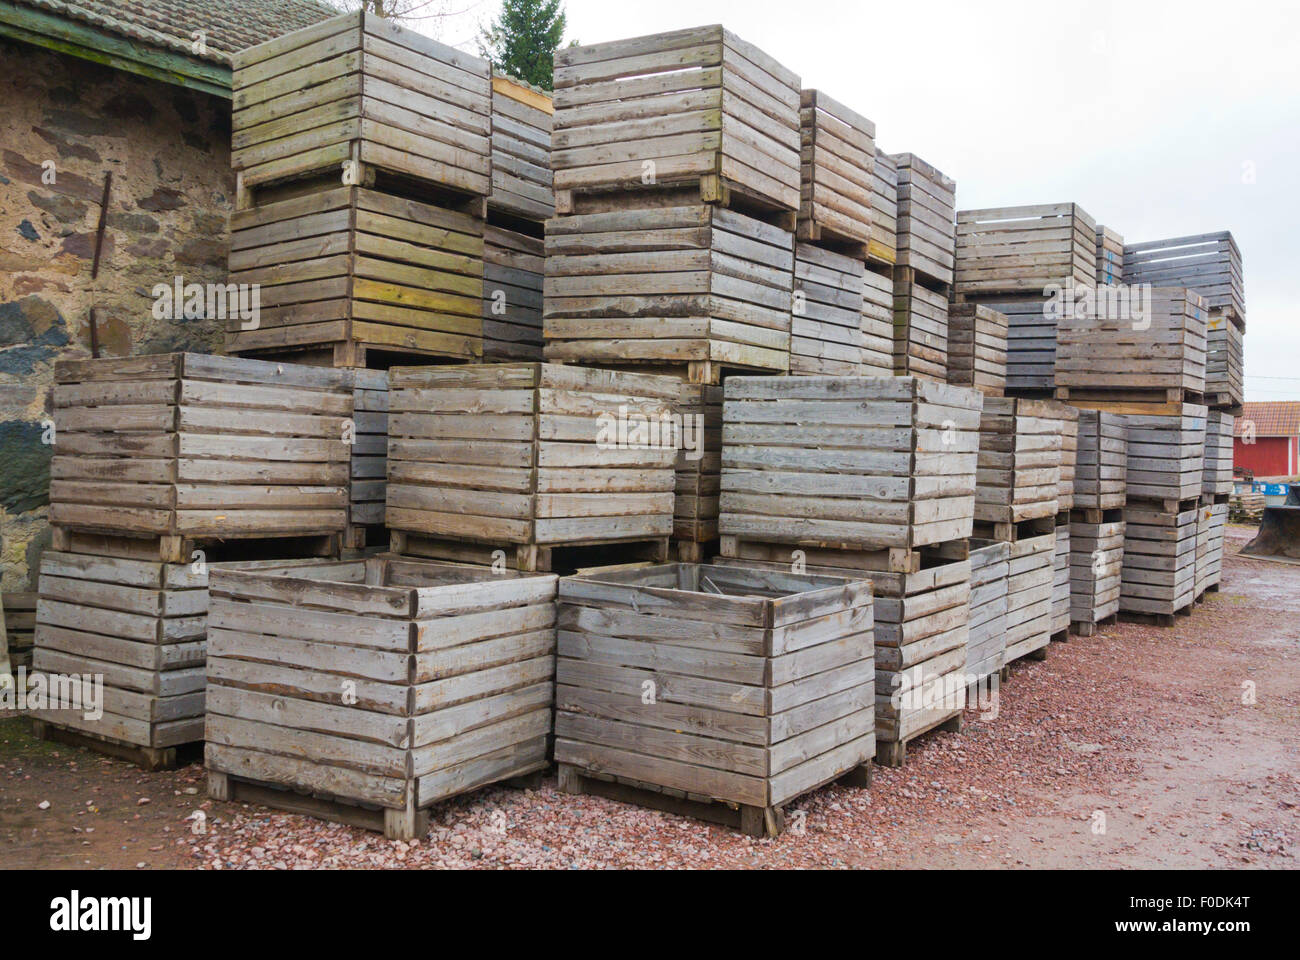 Wooden potato containers, a farm, western Finland - Stock Image